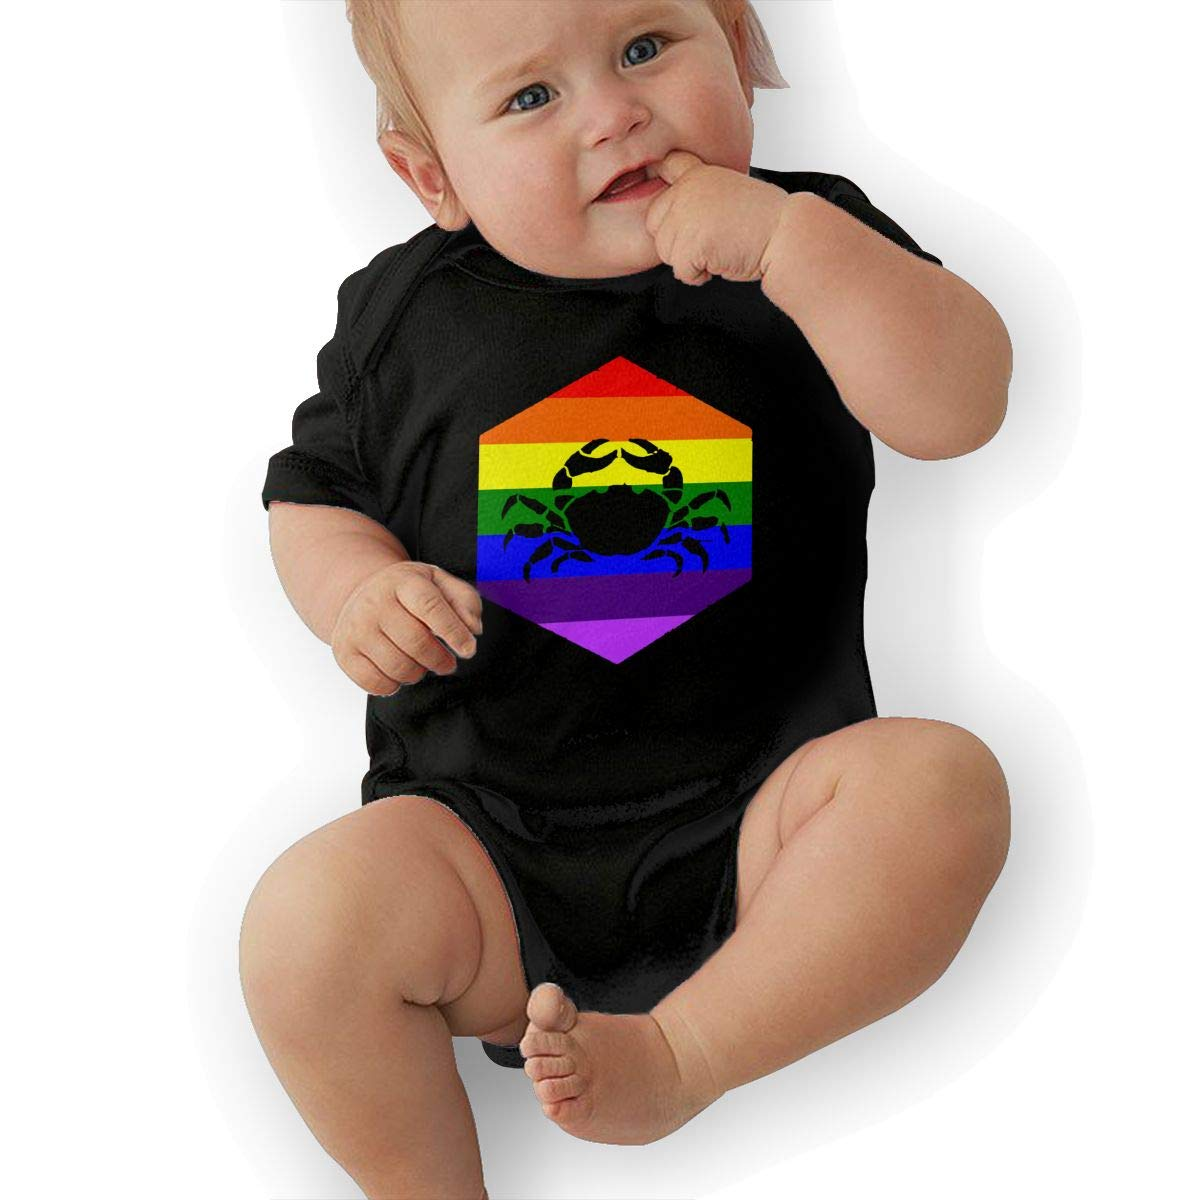 Suit 6-24 Months TAOHJS97 Baby Boys Cancer LGBT Short Sleeve Climbing Clothes Bodysuits